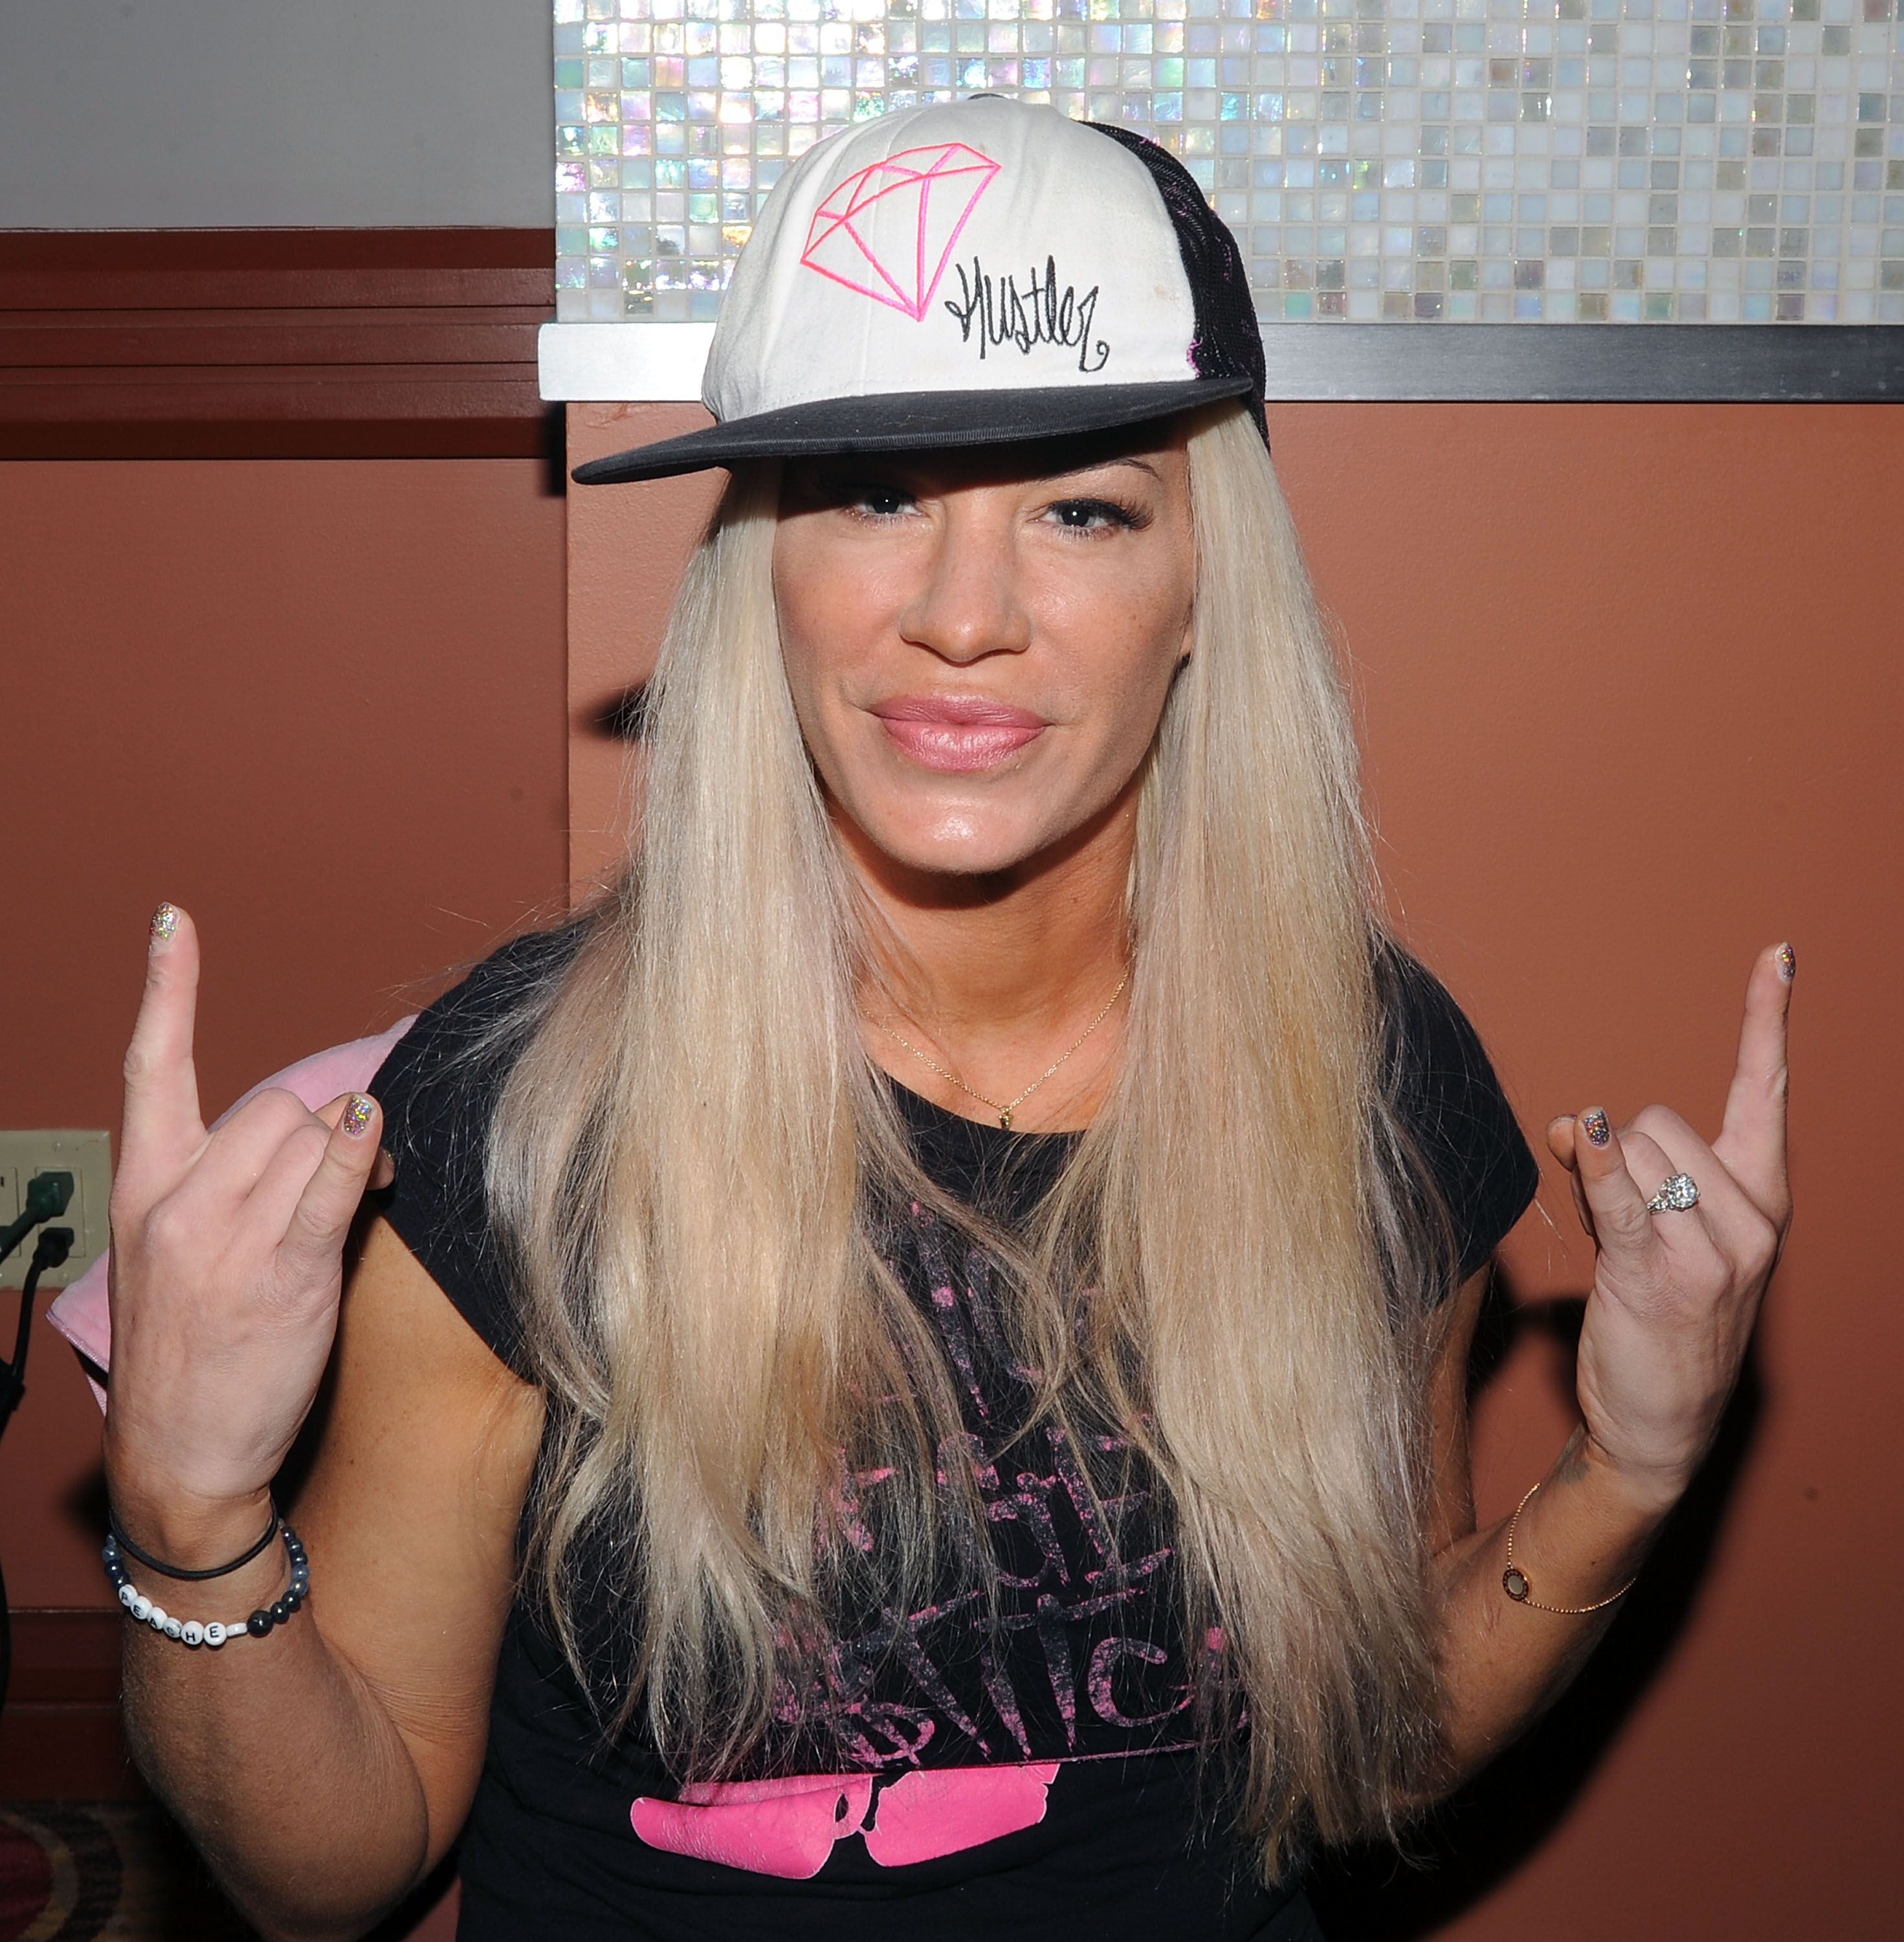 WWE's Ashley Massaro Wished To Donate Brain For CTE Research After Death